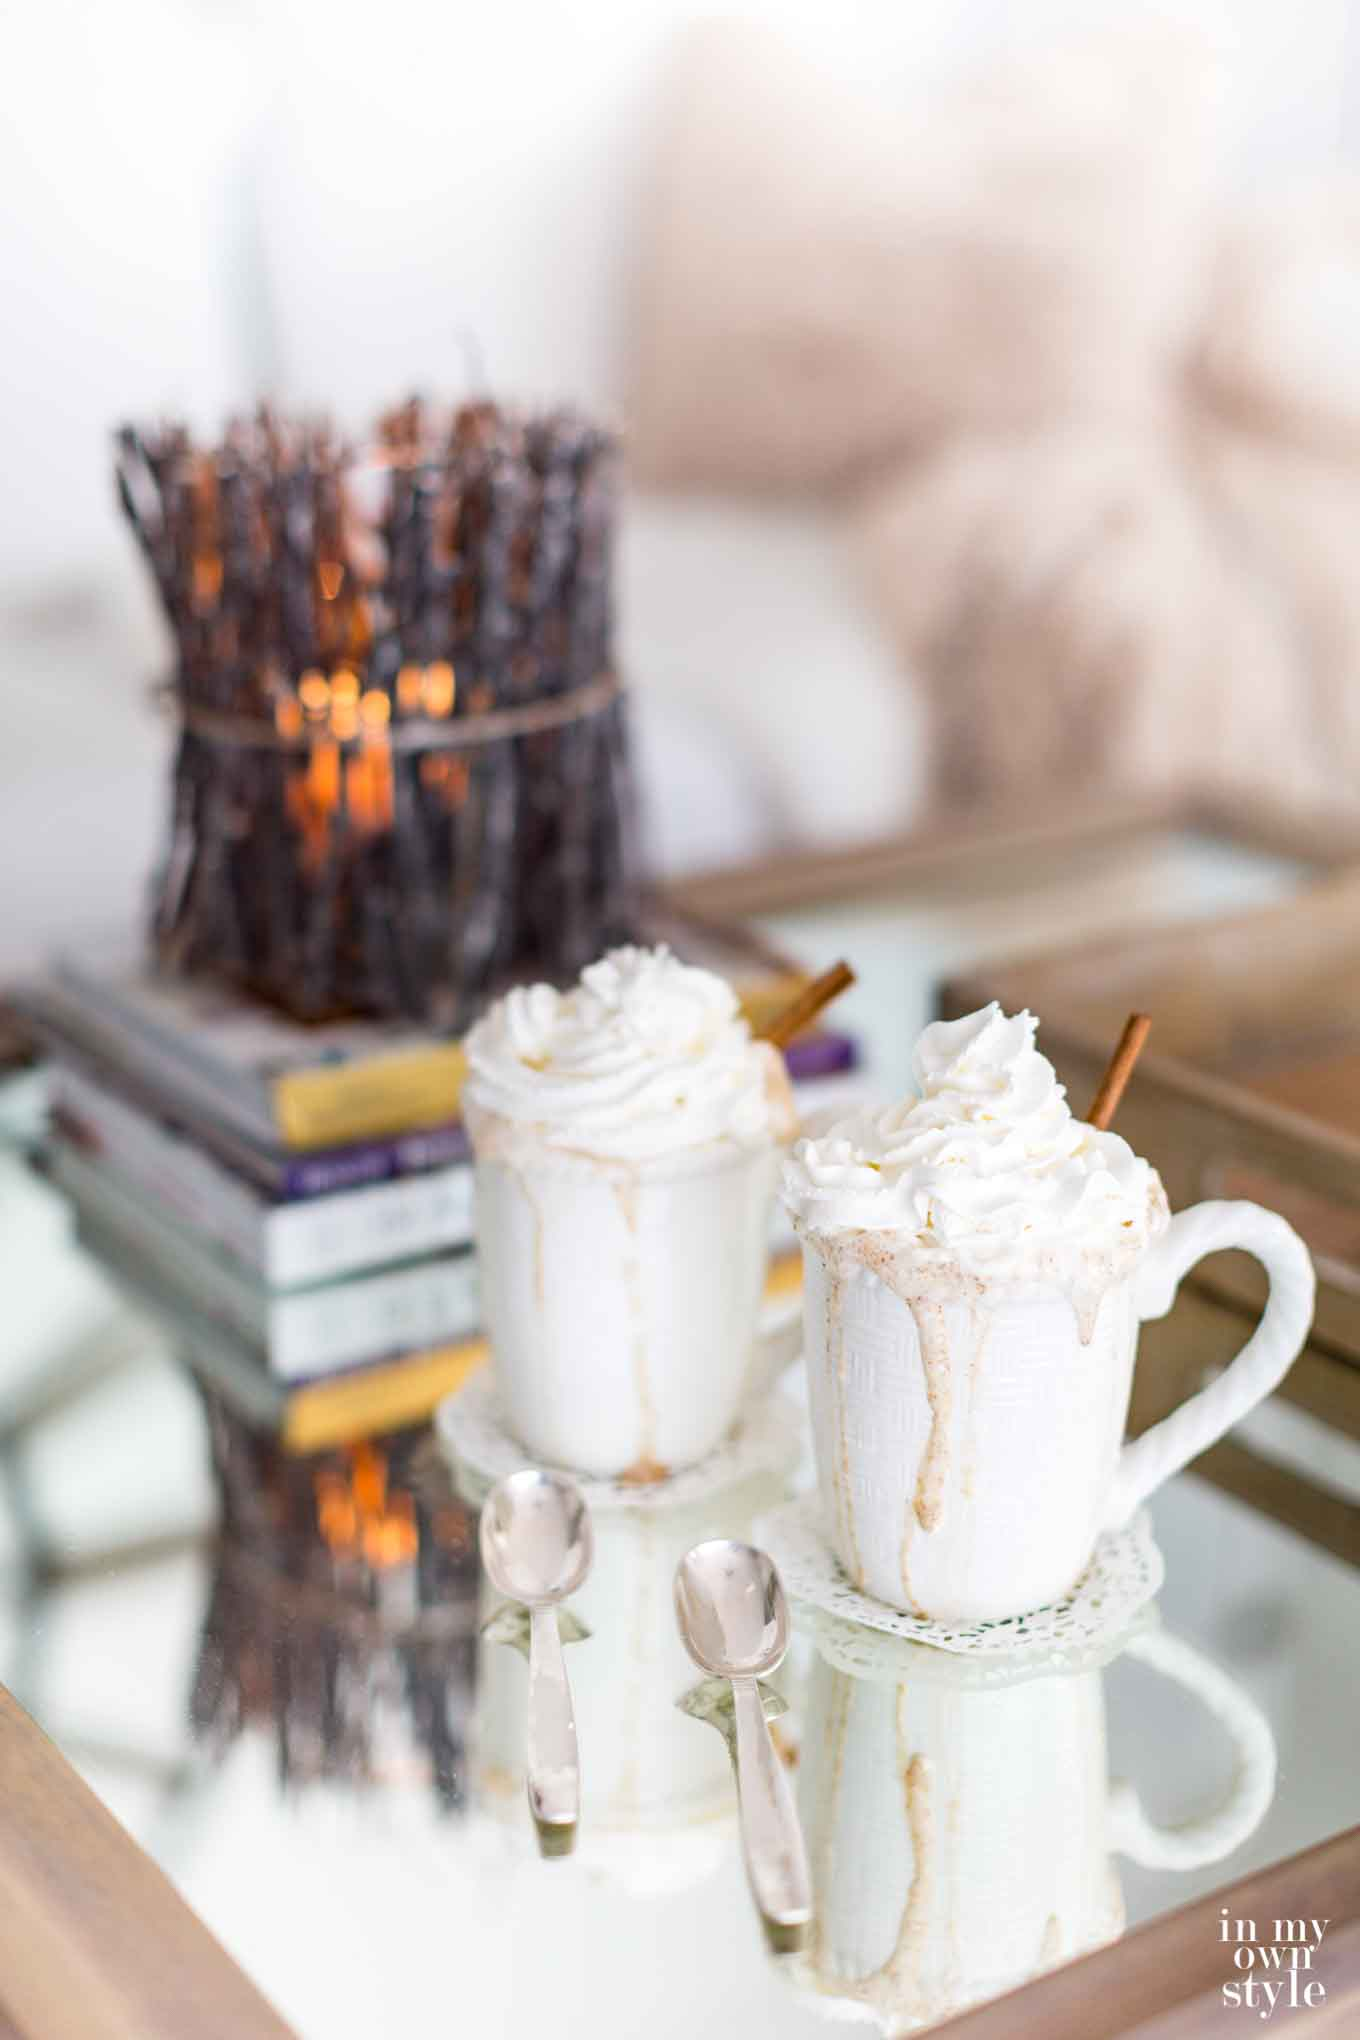 Cozy at home with Hygge